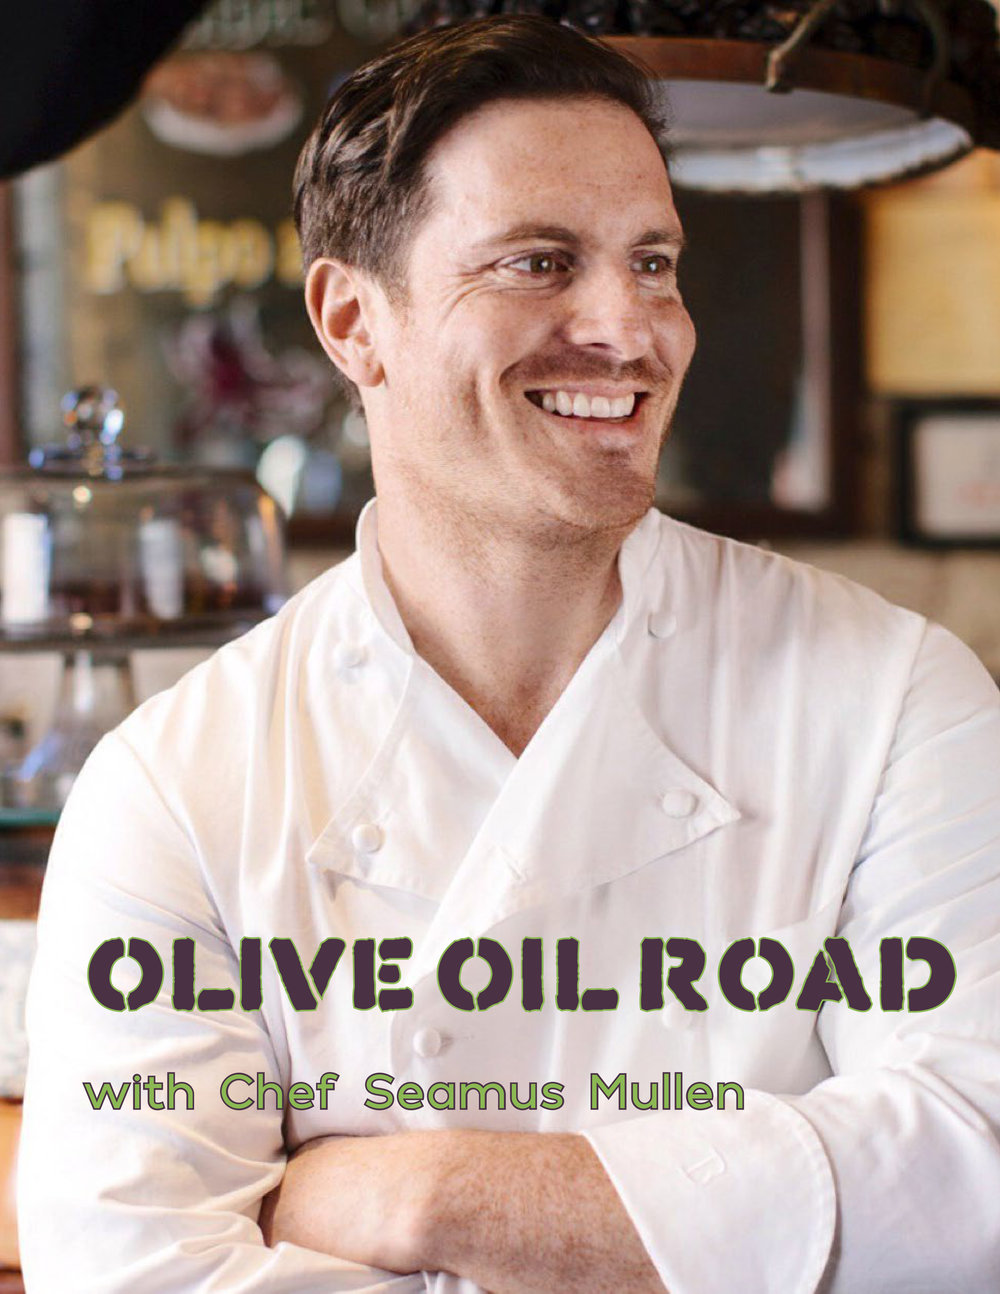 AM AUG OLIVE OIL ROAD WITH CHEF SEAMUS MULLEN-1.jpg